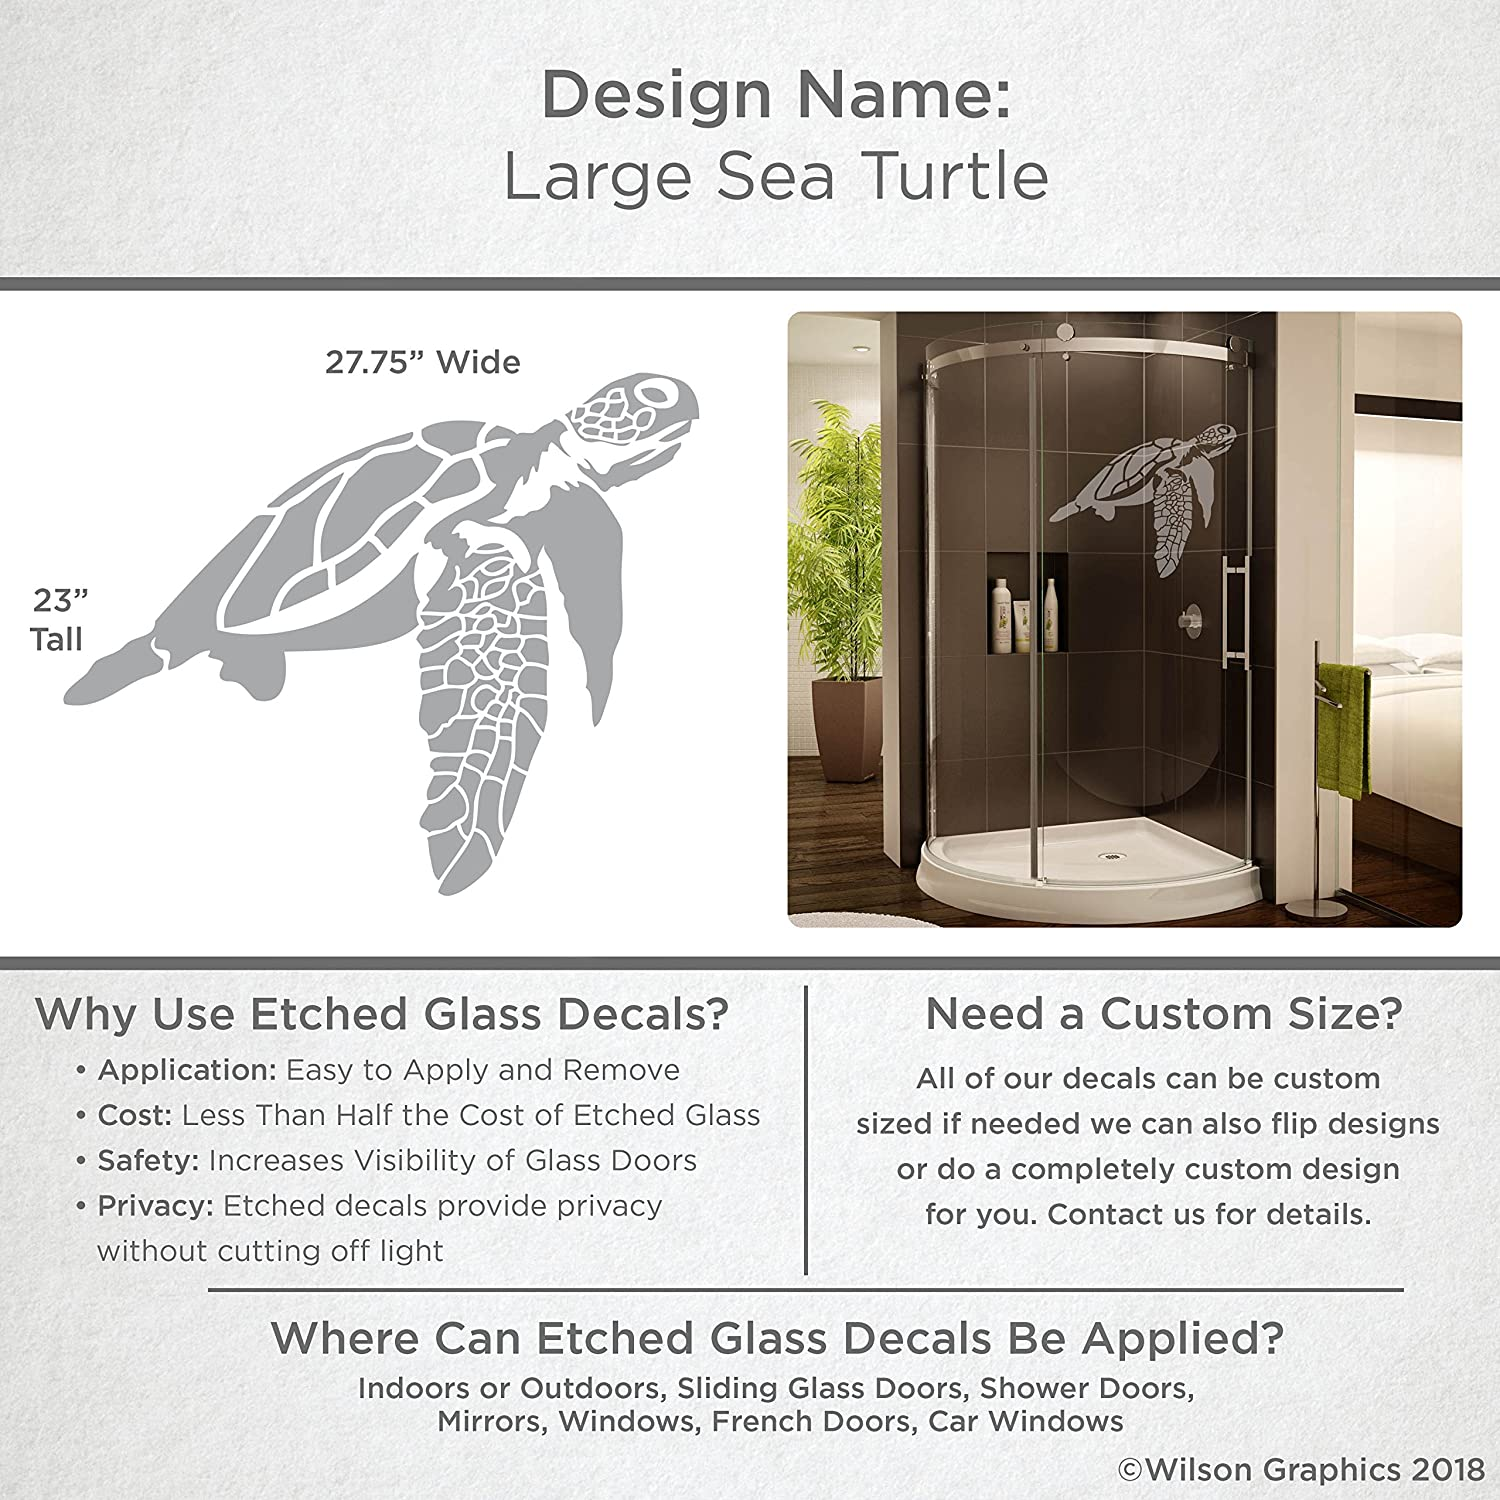 Glass Doors and Windows Etched Decal Coastal Design Series Custom Sizes Available For Shower Doors 23 tall x 27.75 wide Large Sea Turtle